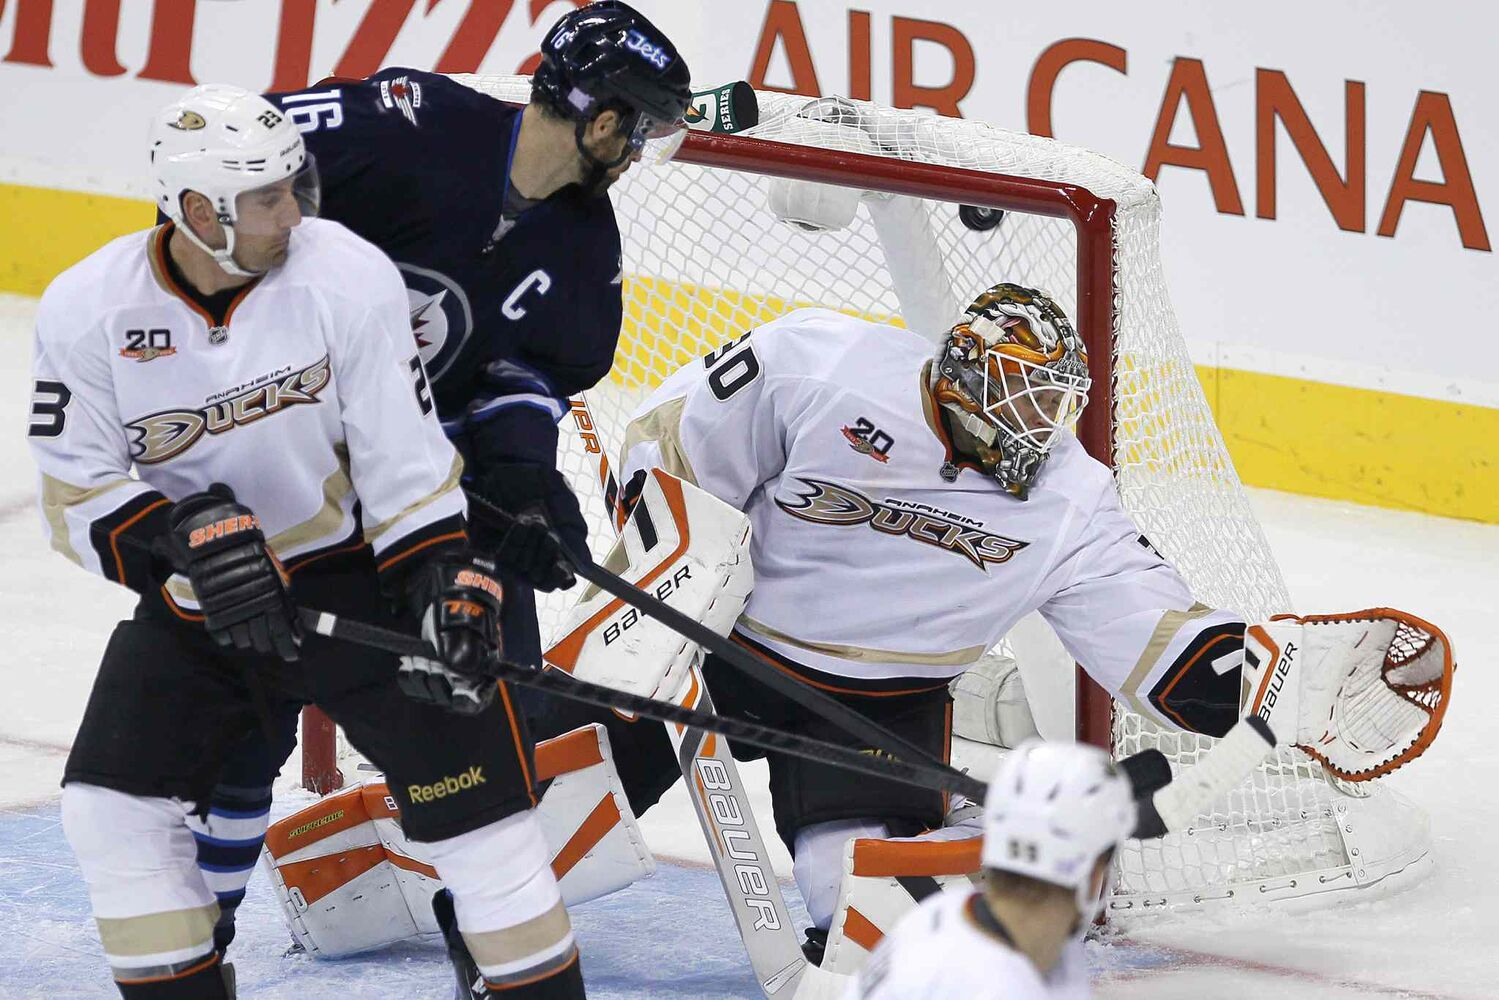 Winnipeg Jets' Andrew Ladd tips Blake Wheeler's shot past Anaheim Ducks goaltender Viktor Fasth as Francois Beauchemin defends in the first period. (JOHN WOODS / WINNIPEG FREE PRESS)